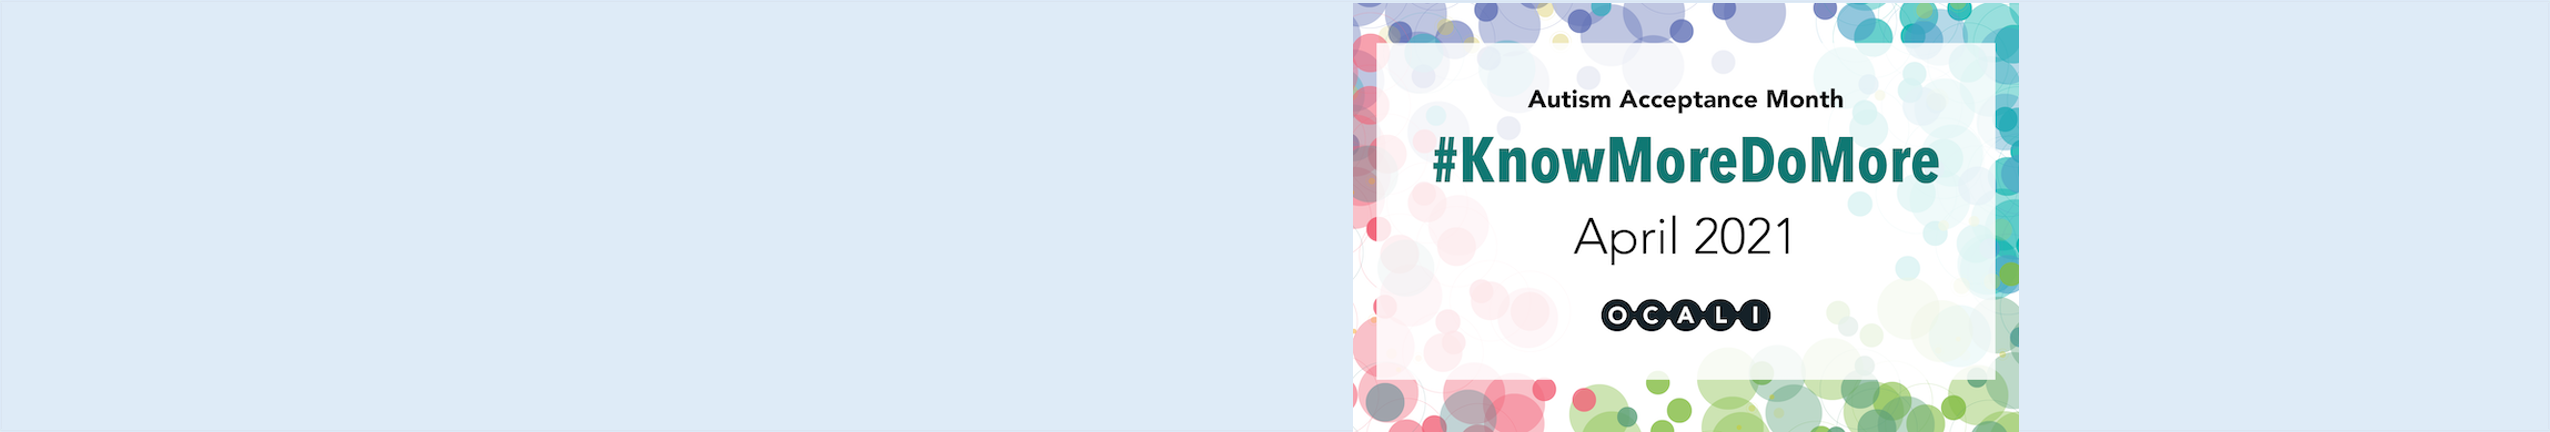 Colorful circles with text for Autism Acceptance Month and #KnowMoreDoMore